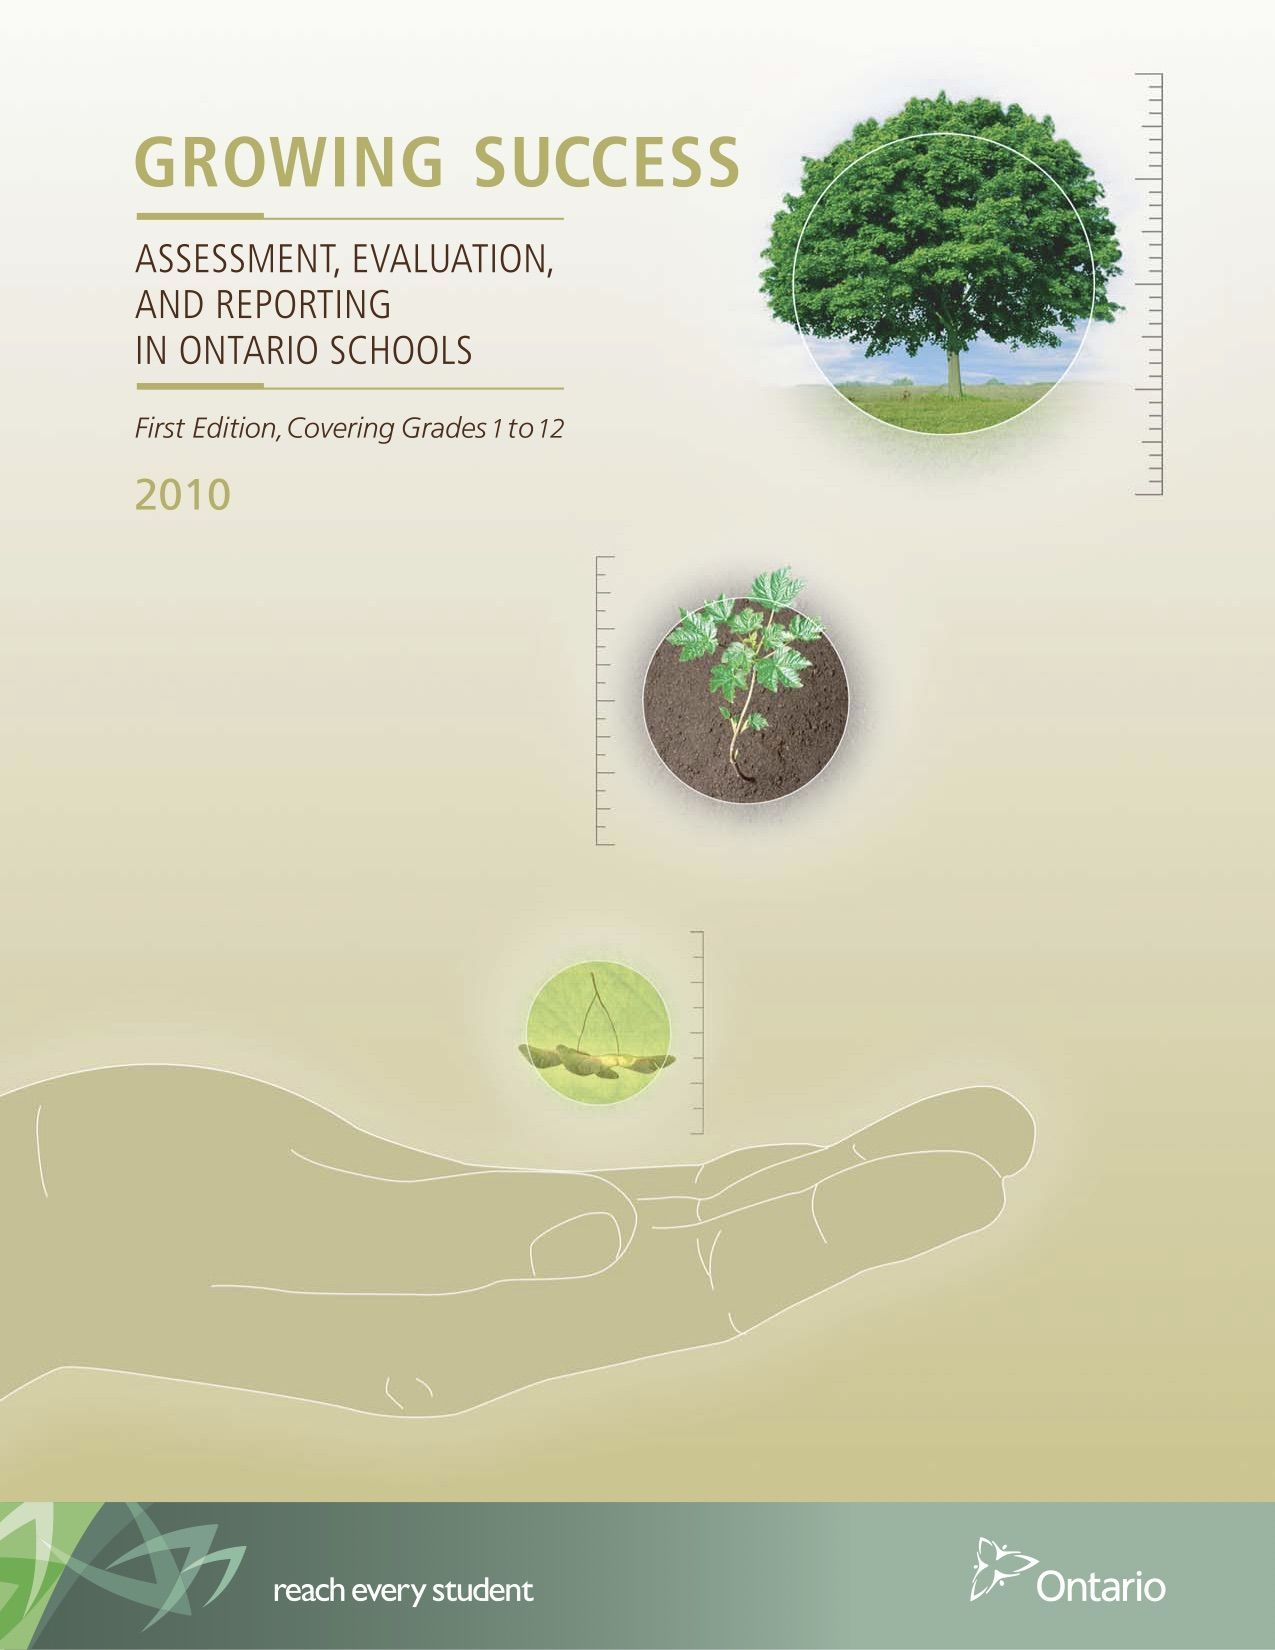 Growing Success Document For Assessment Evaluation And